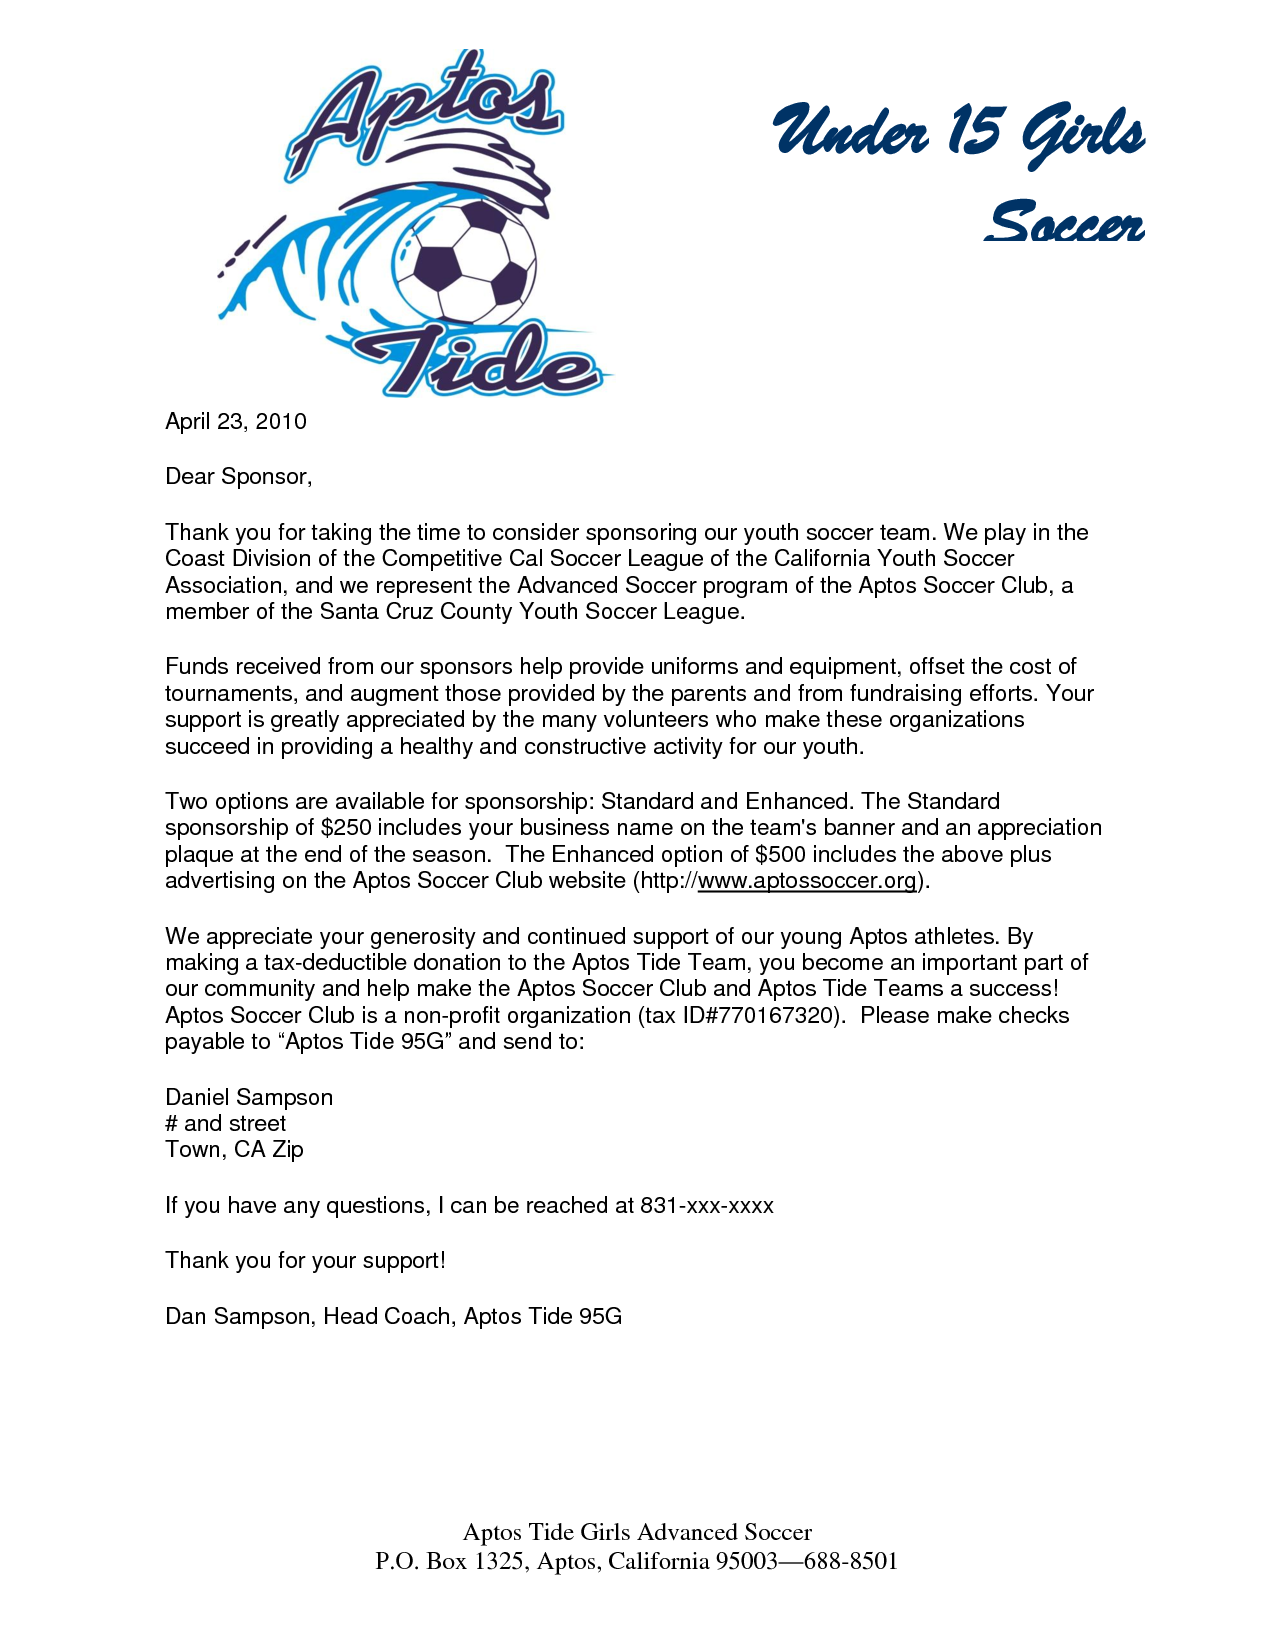 parent thank you letter from youth athletes sponsorship letter sample